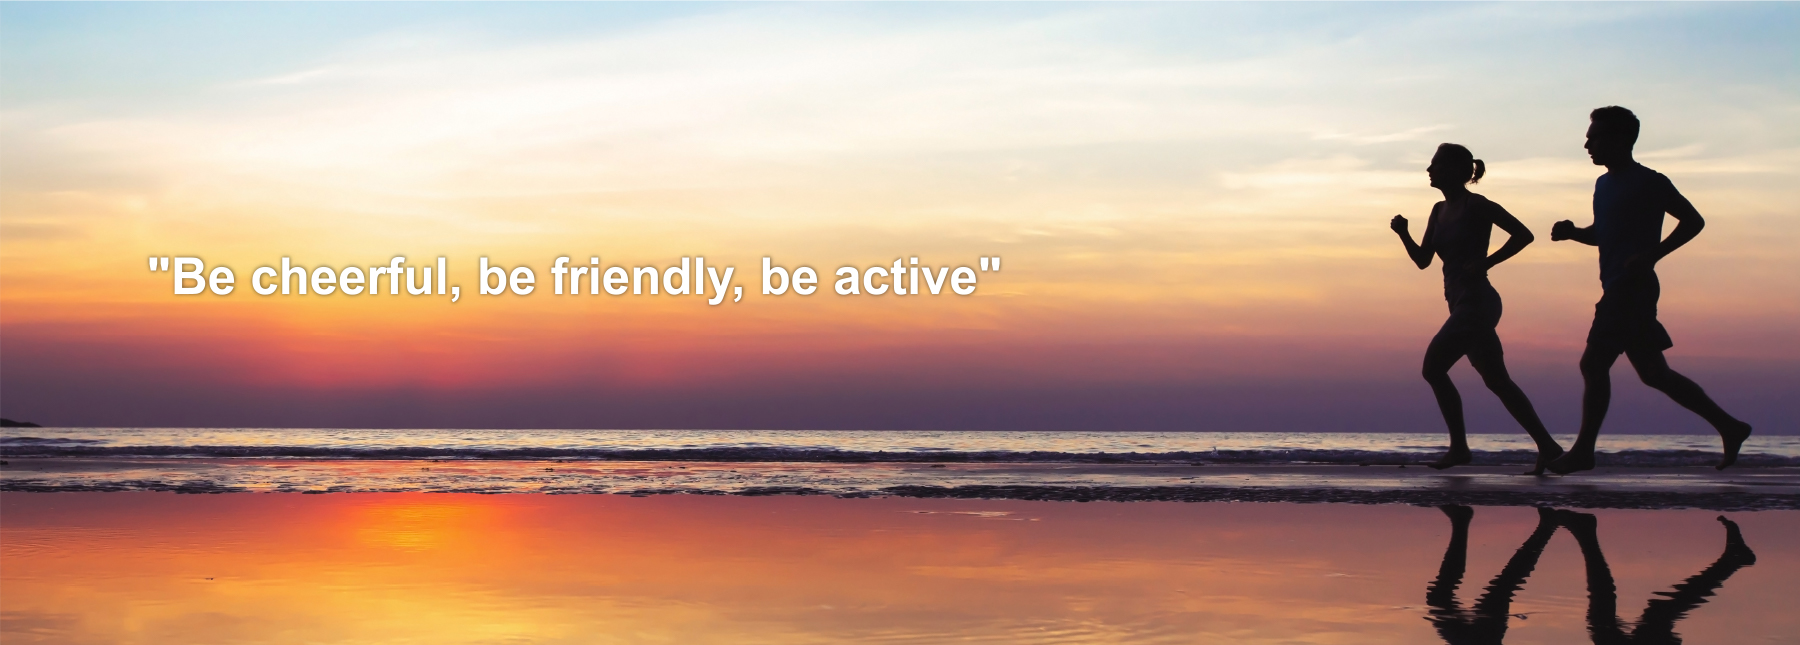 Be cheerful, be friendly, be active